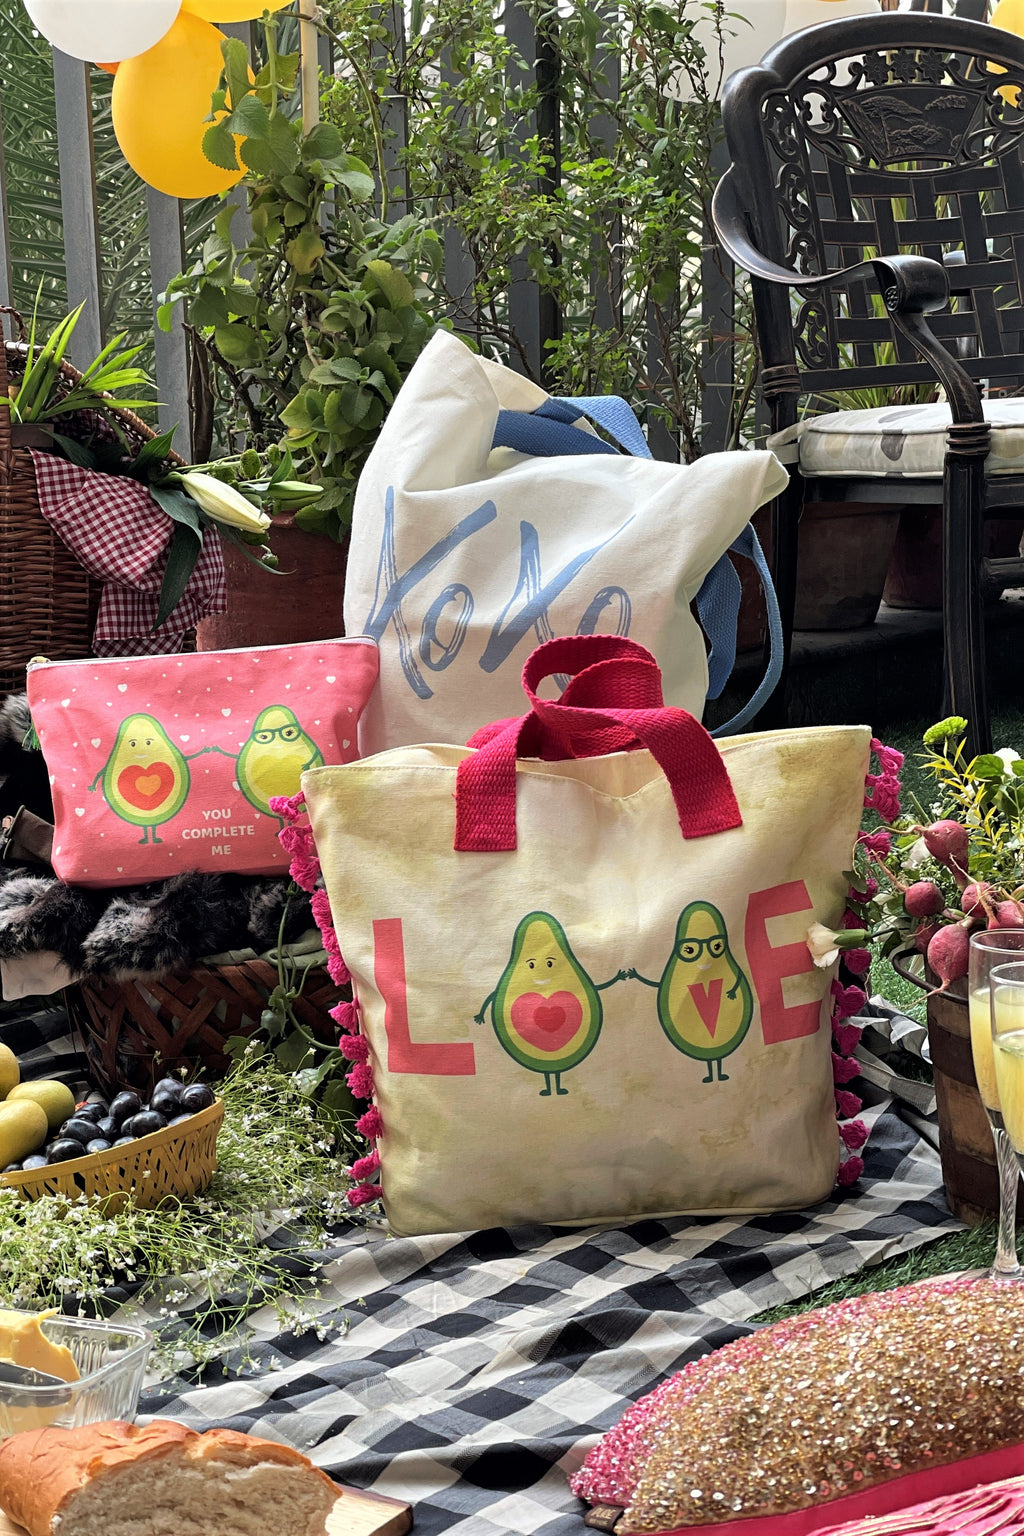 Avo Love Collection - Set of 3 - 2 Totes & 1 Pouch